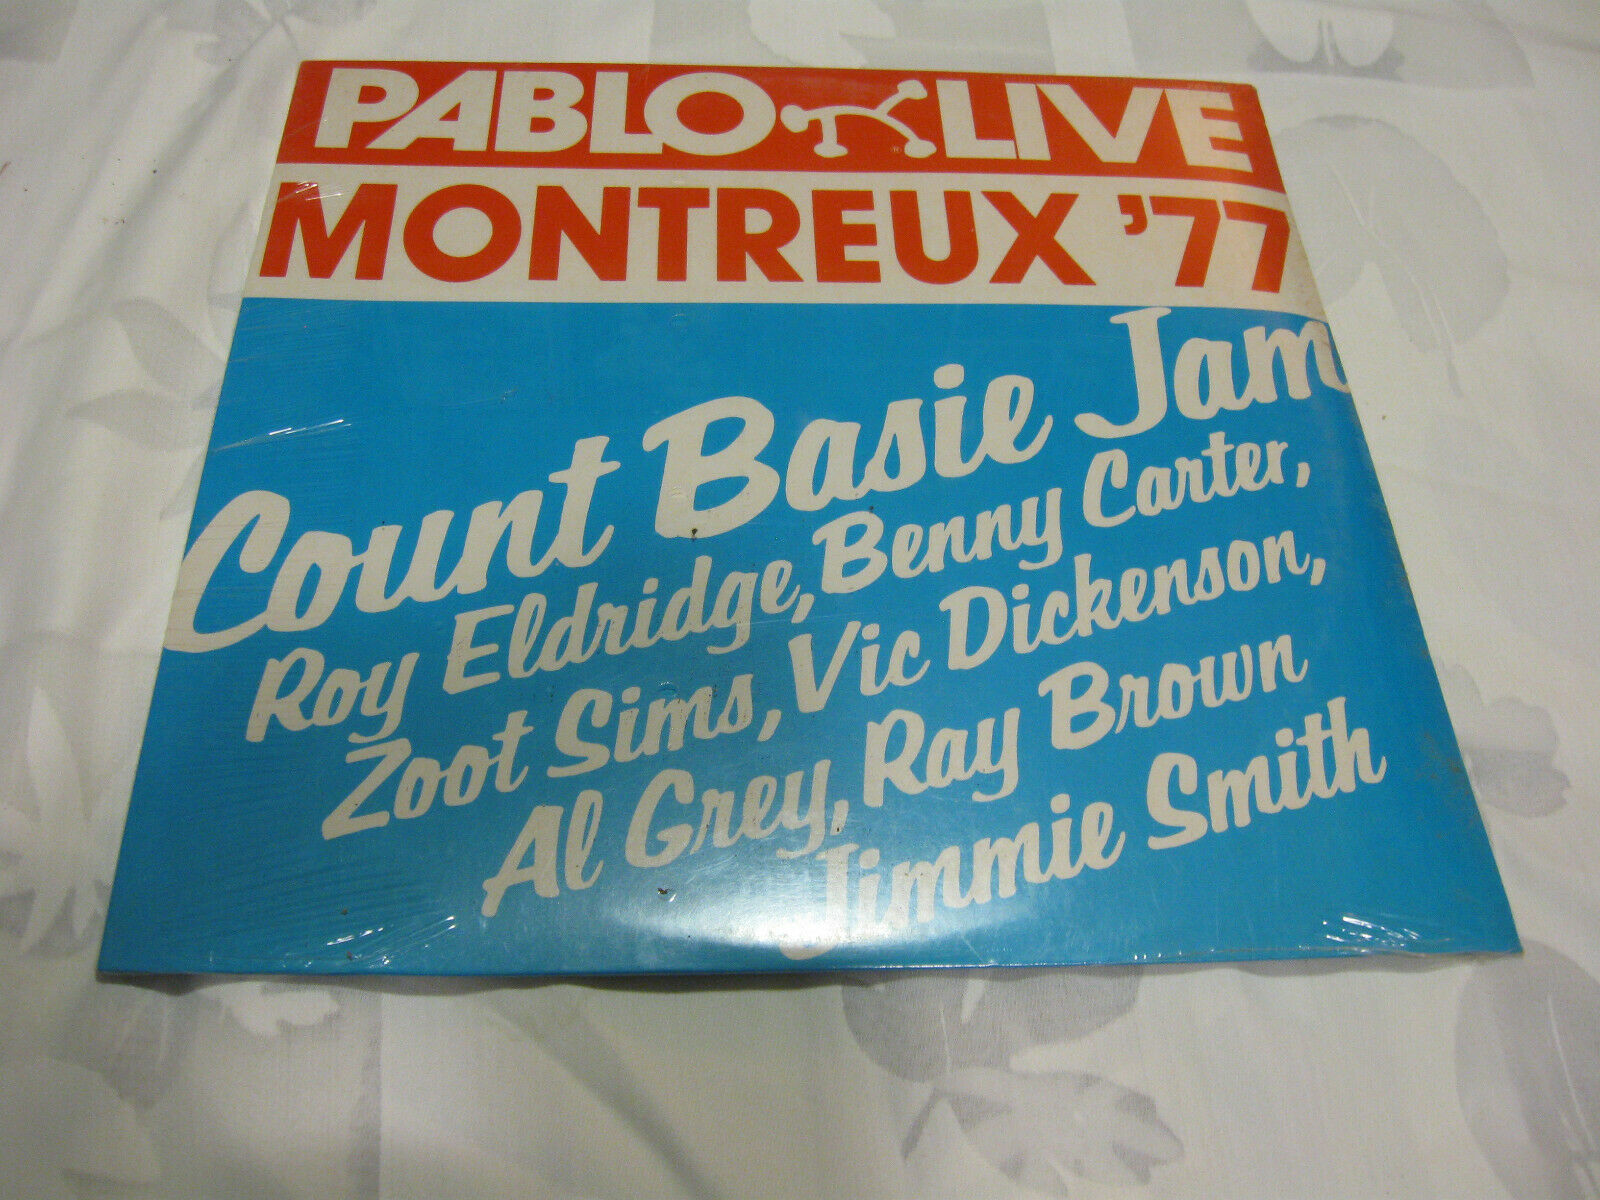 Count Basie Jam Montreux 77 Pablo 2308 239 Stereo Vinyl Record LP Jazz SEALED